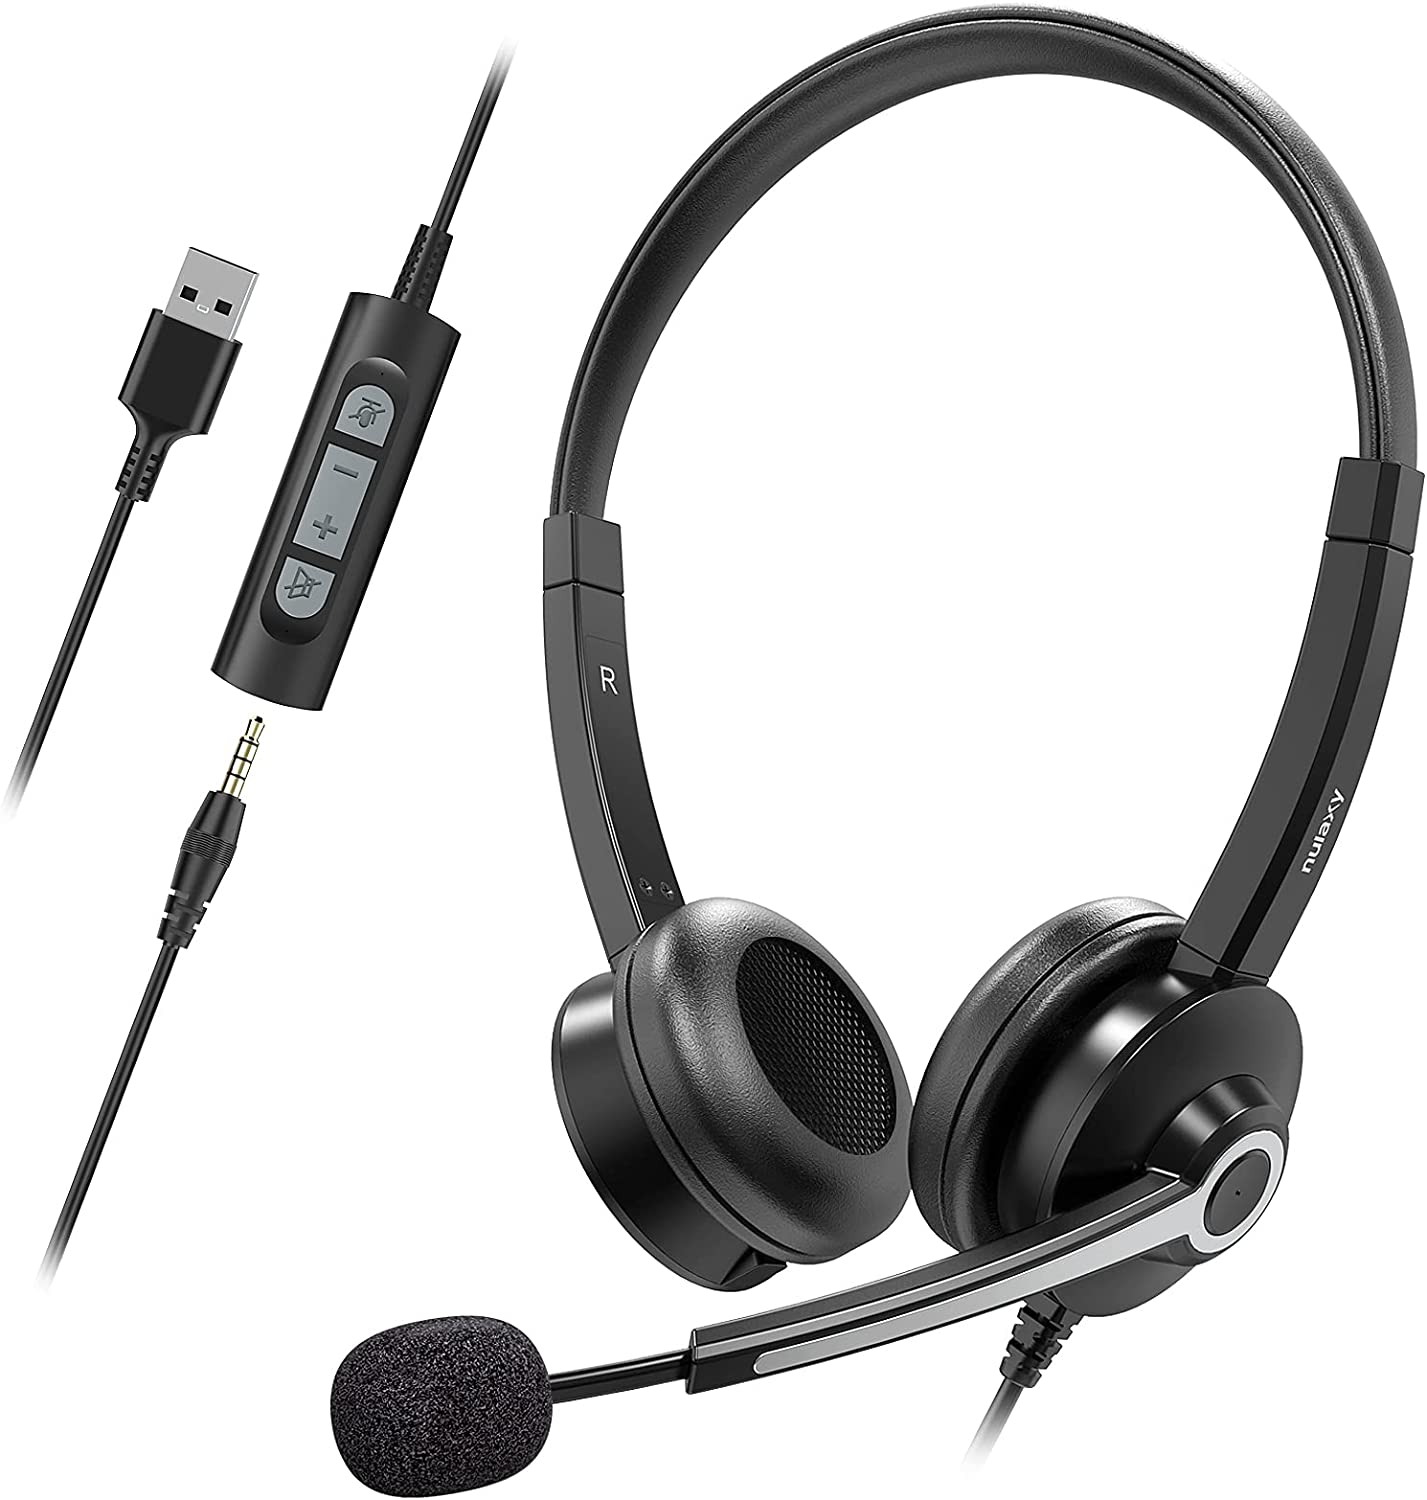 Nulaxy USB Headset with Microphone